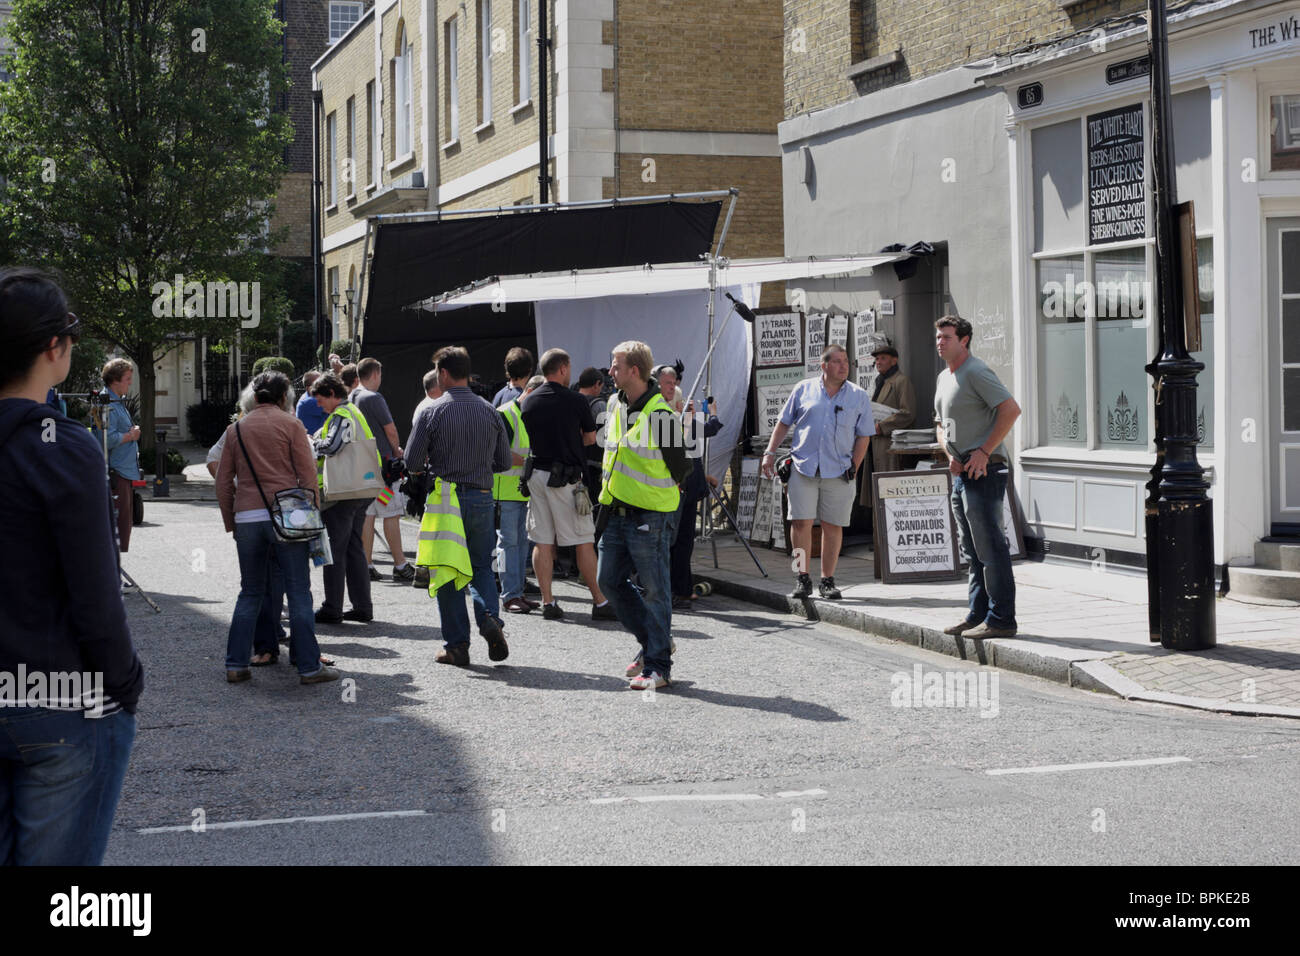 Film crew and cast in York Street and George Street, London during filming period drama of Edward and Mrs Simpson. - Stock Image